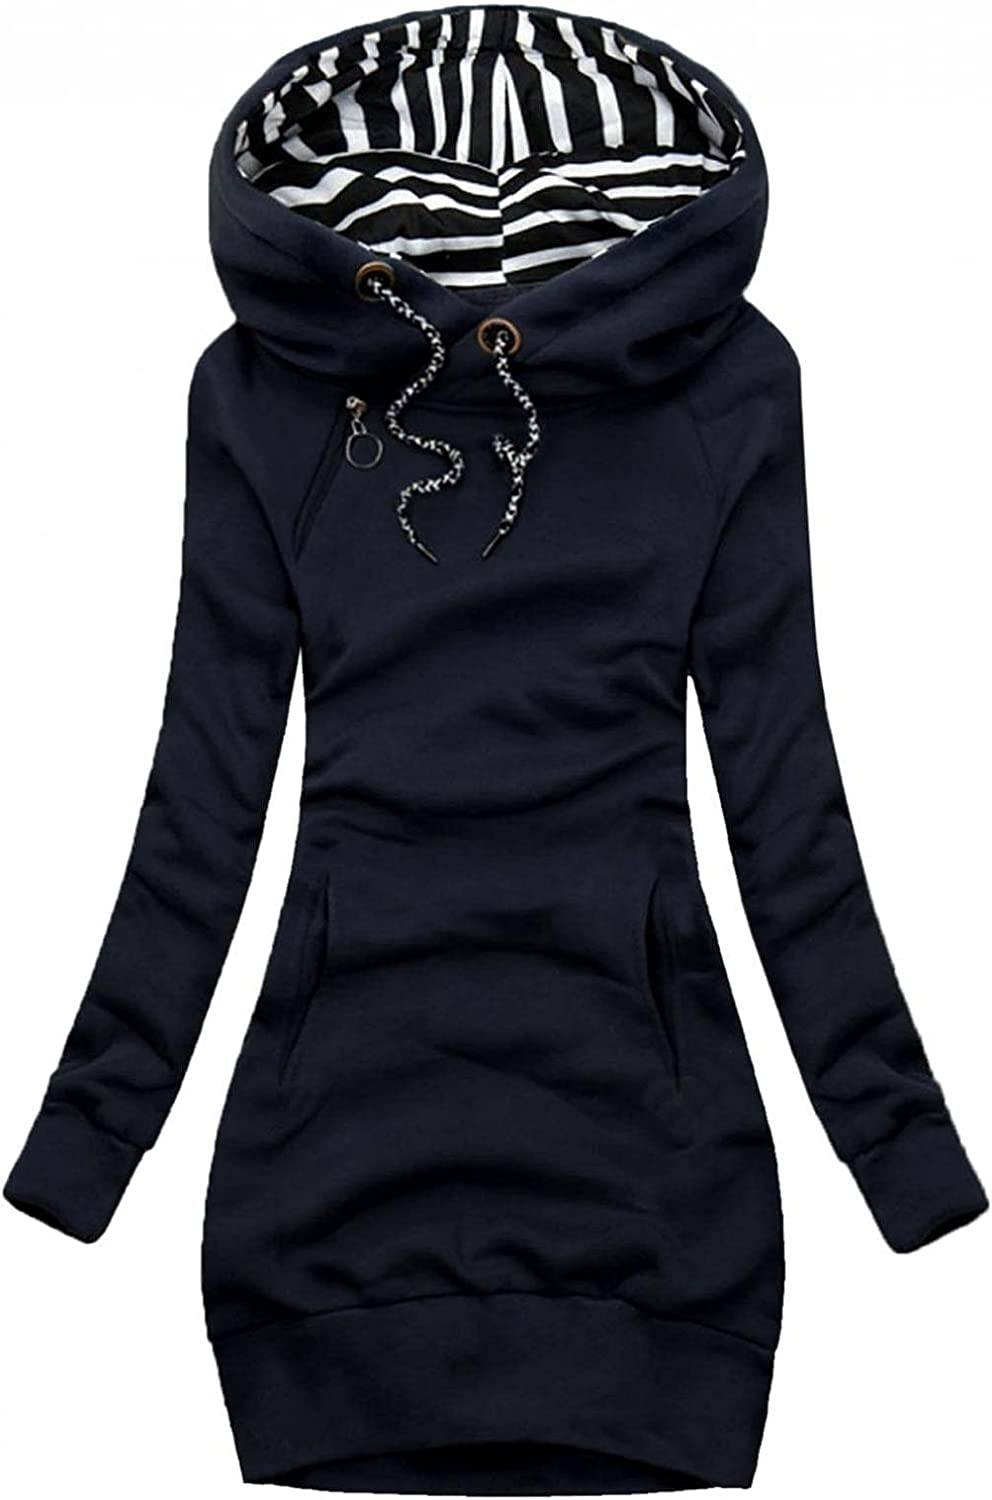 Womens Fashionable Sweatshirts discount Long Sleeve Pullover with Tops Hoodies Pocket